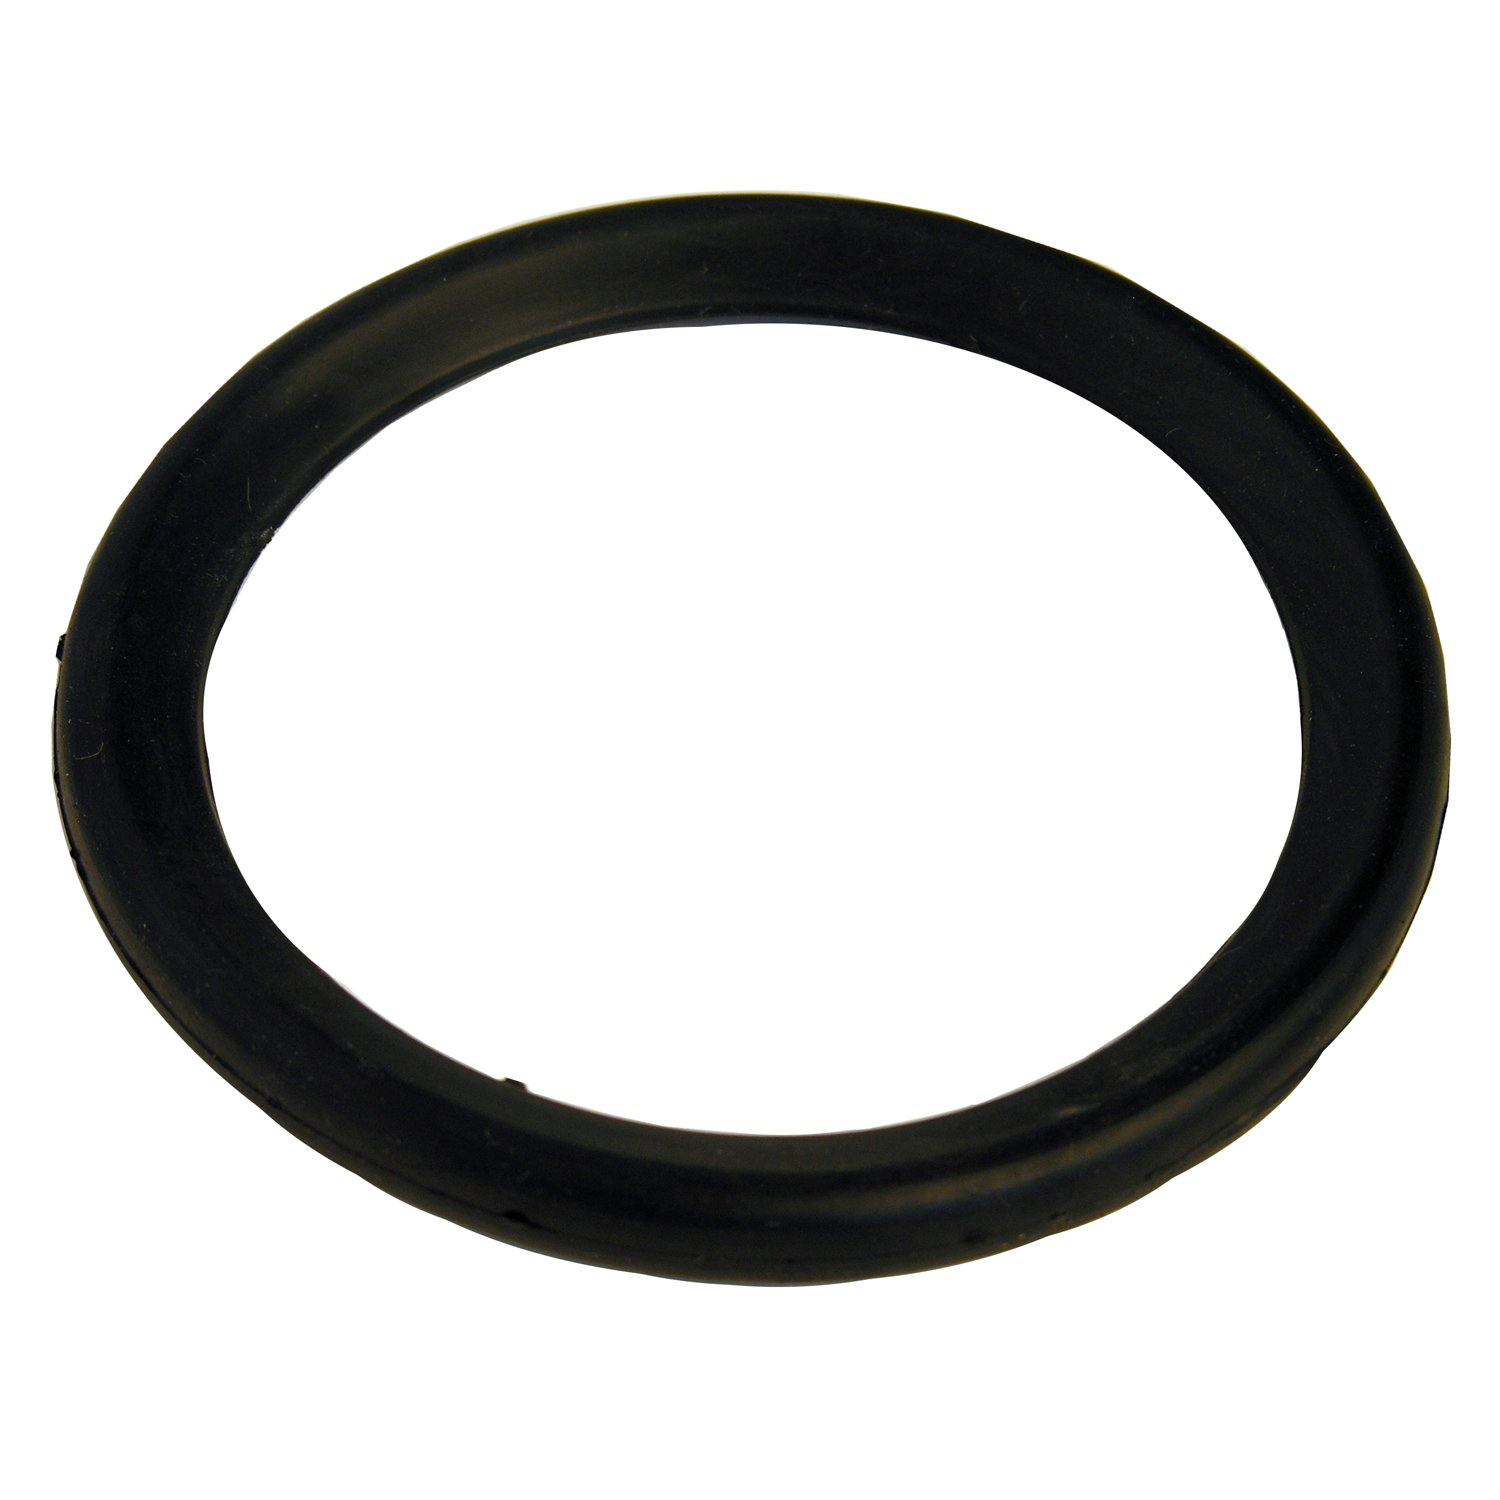 LASCO 02-3063 Flush Valve Rubber Seal Washer Number 715-27 for Number 4 American Standard Flush Valve